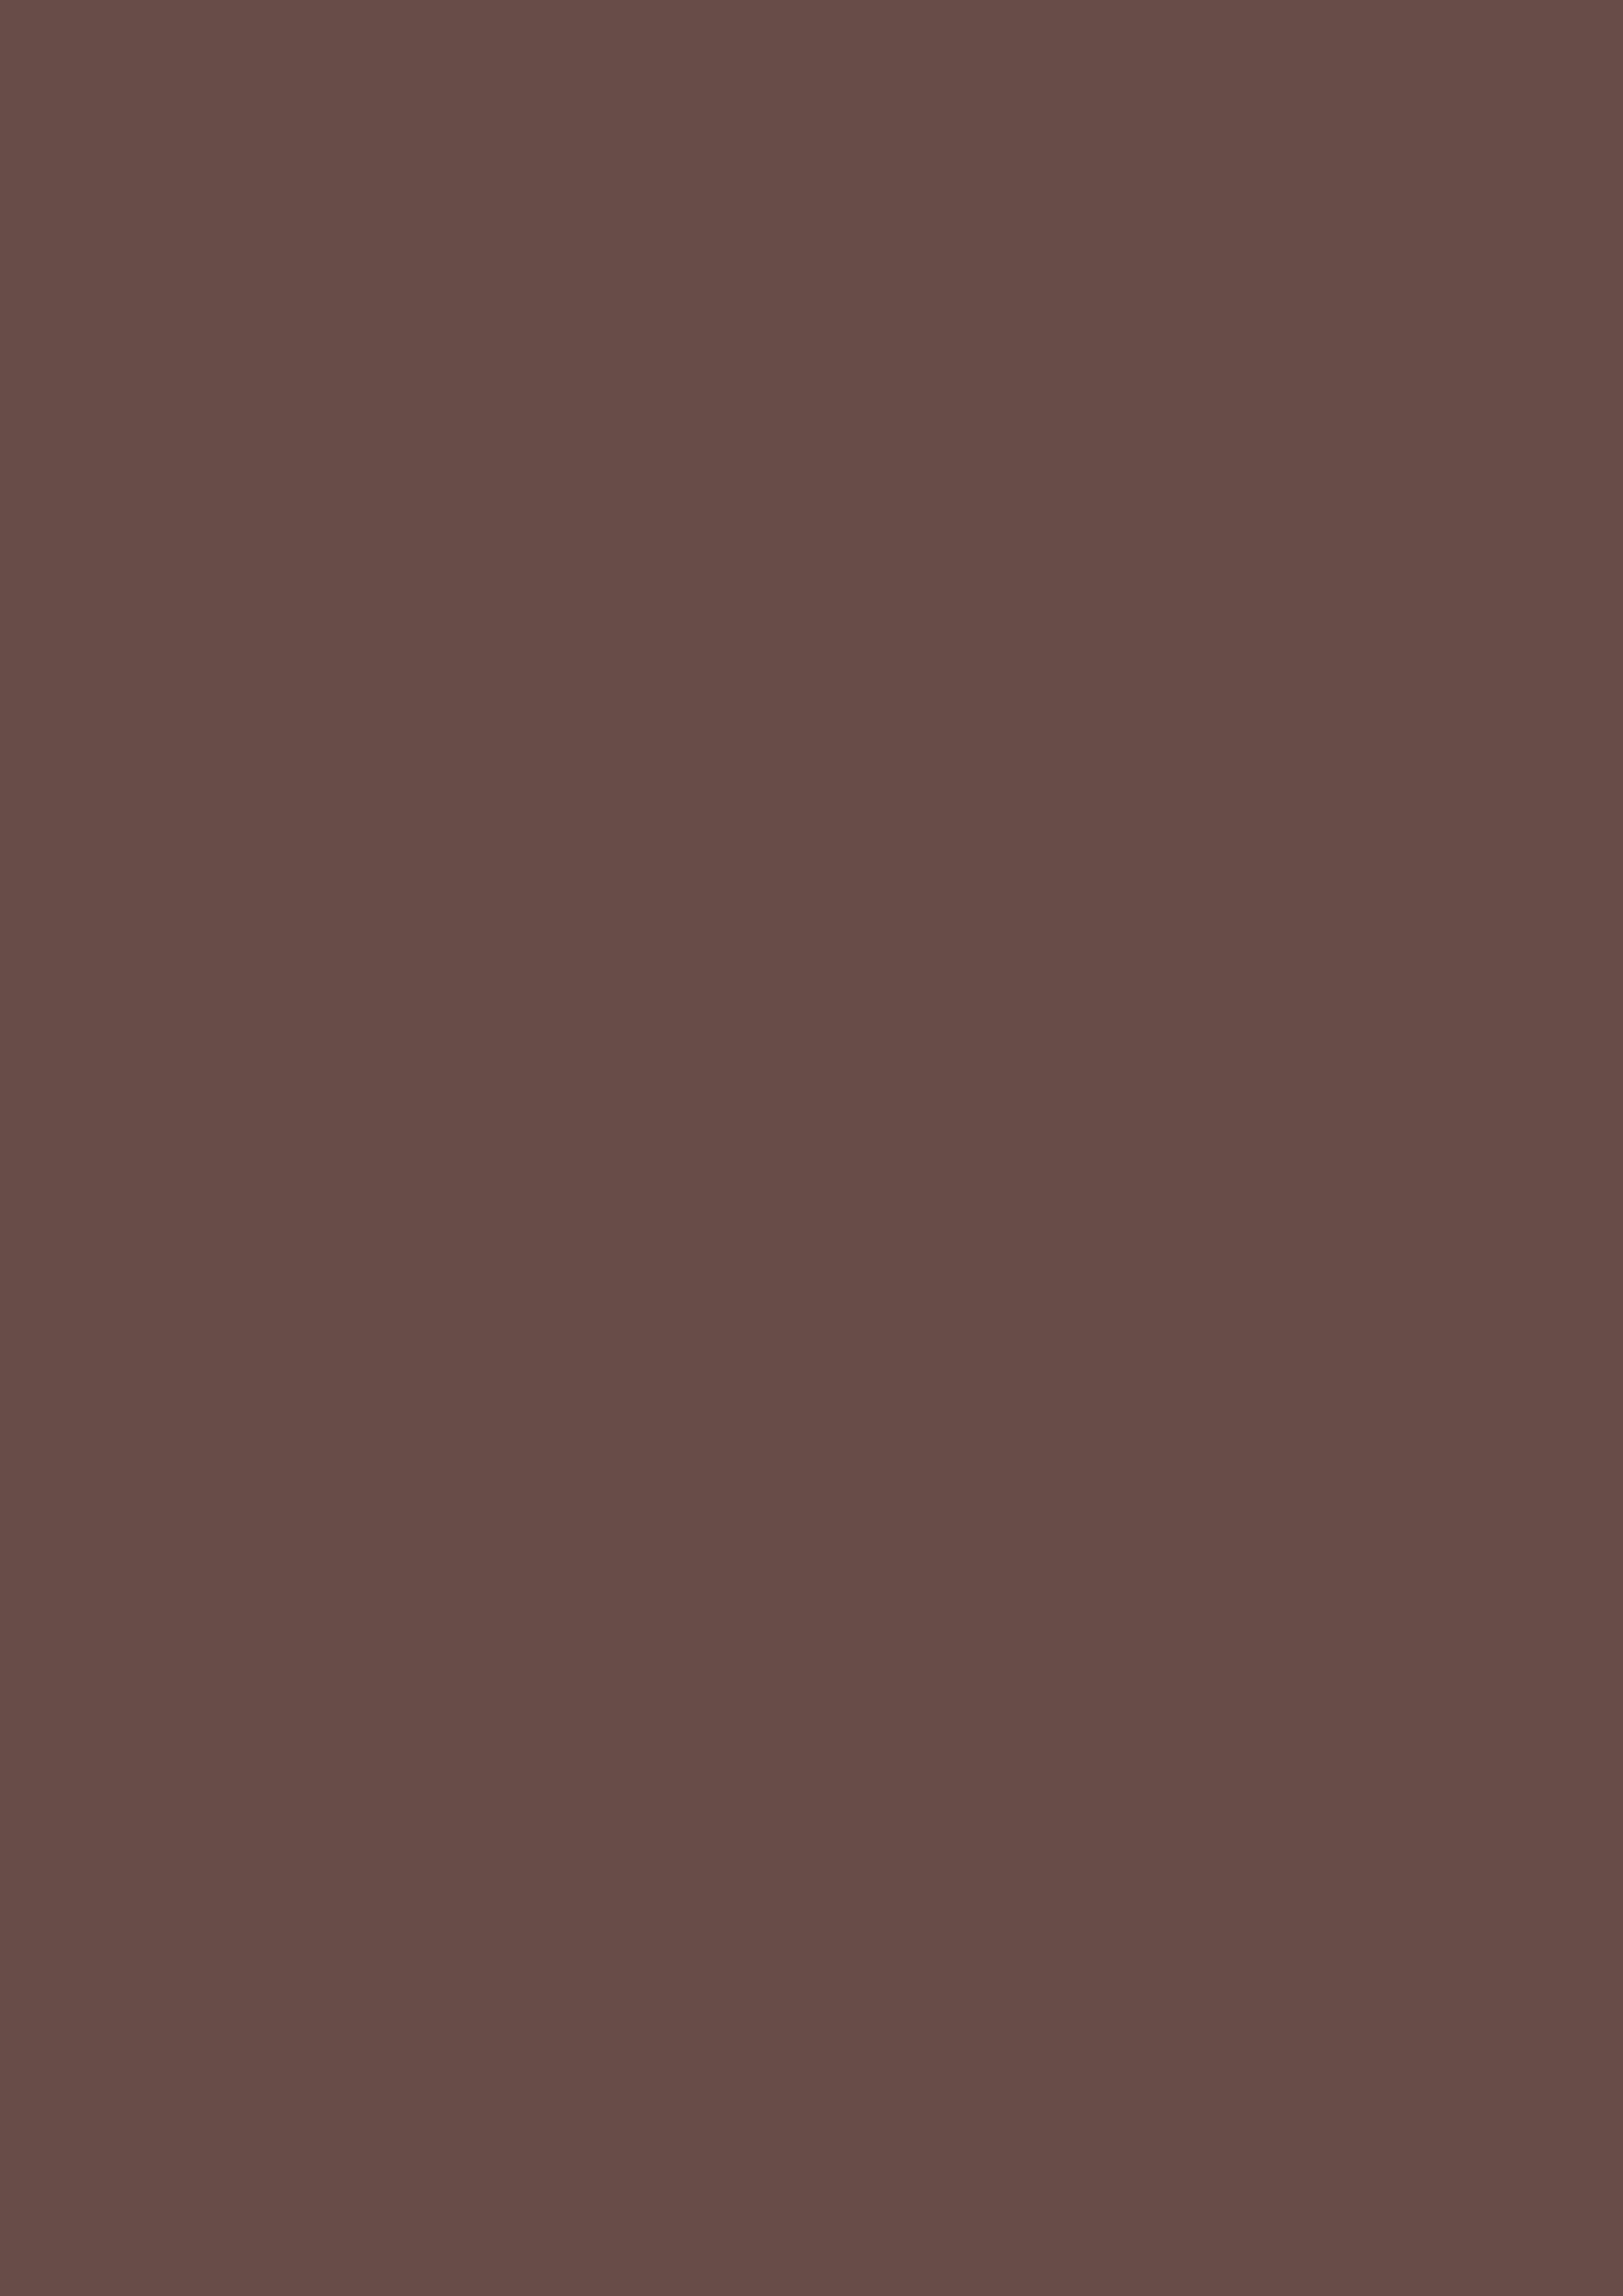 2480x3508 Medium Taupe Solid Color Background